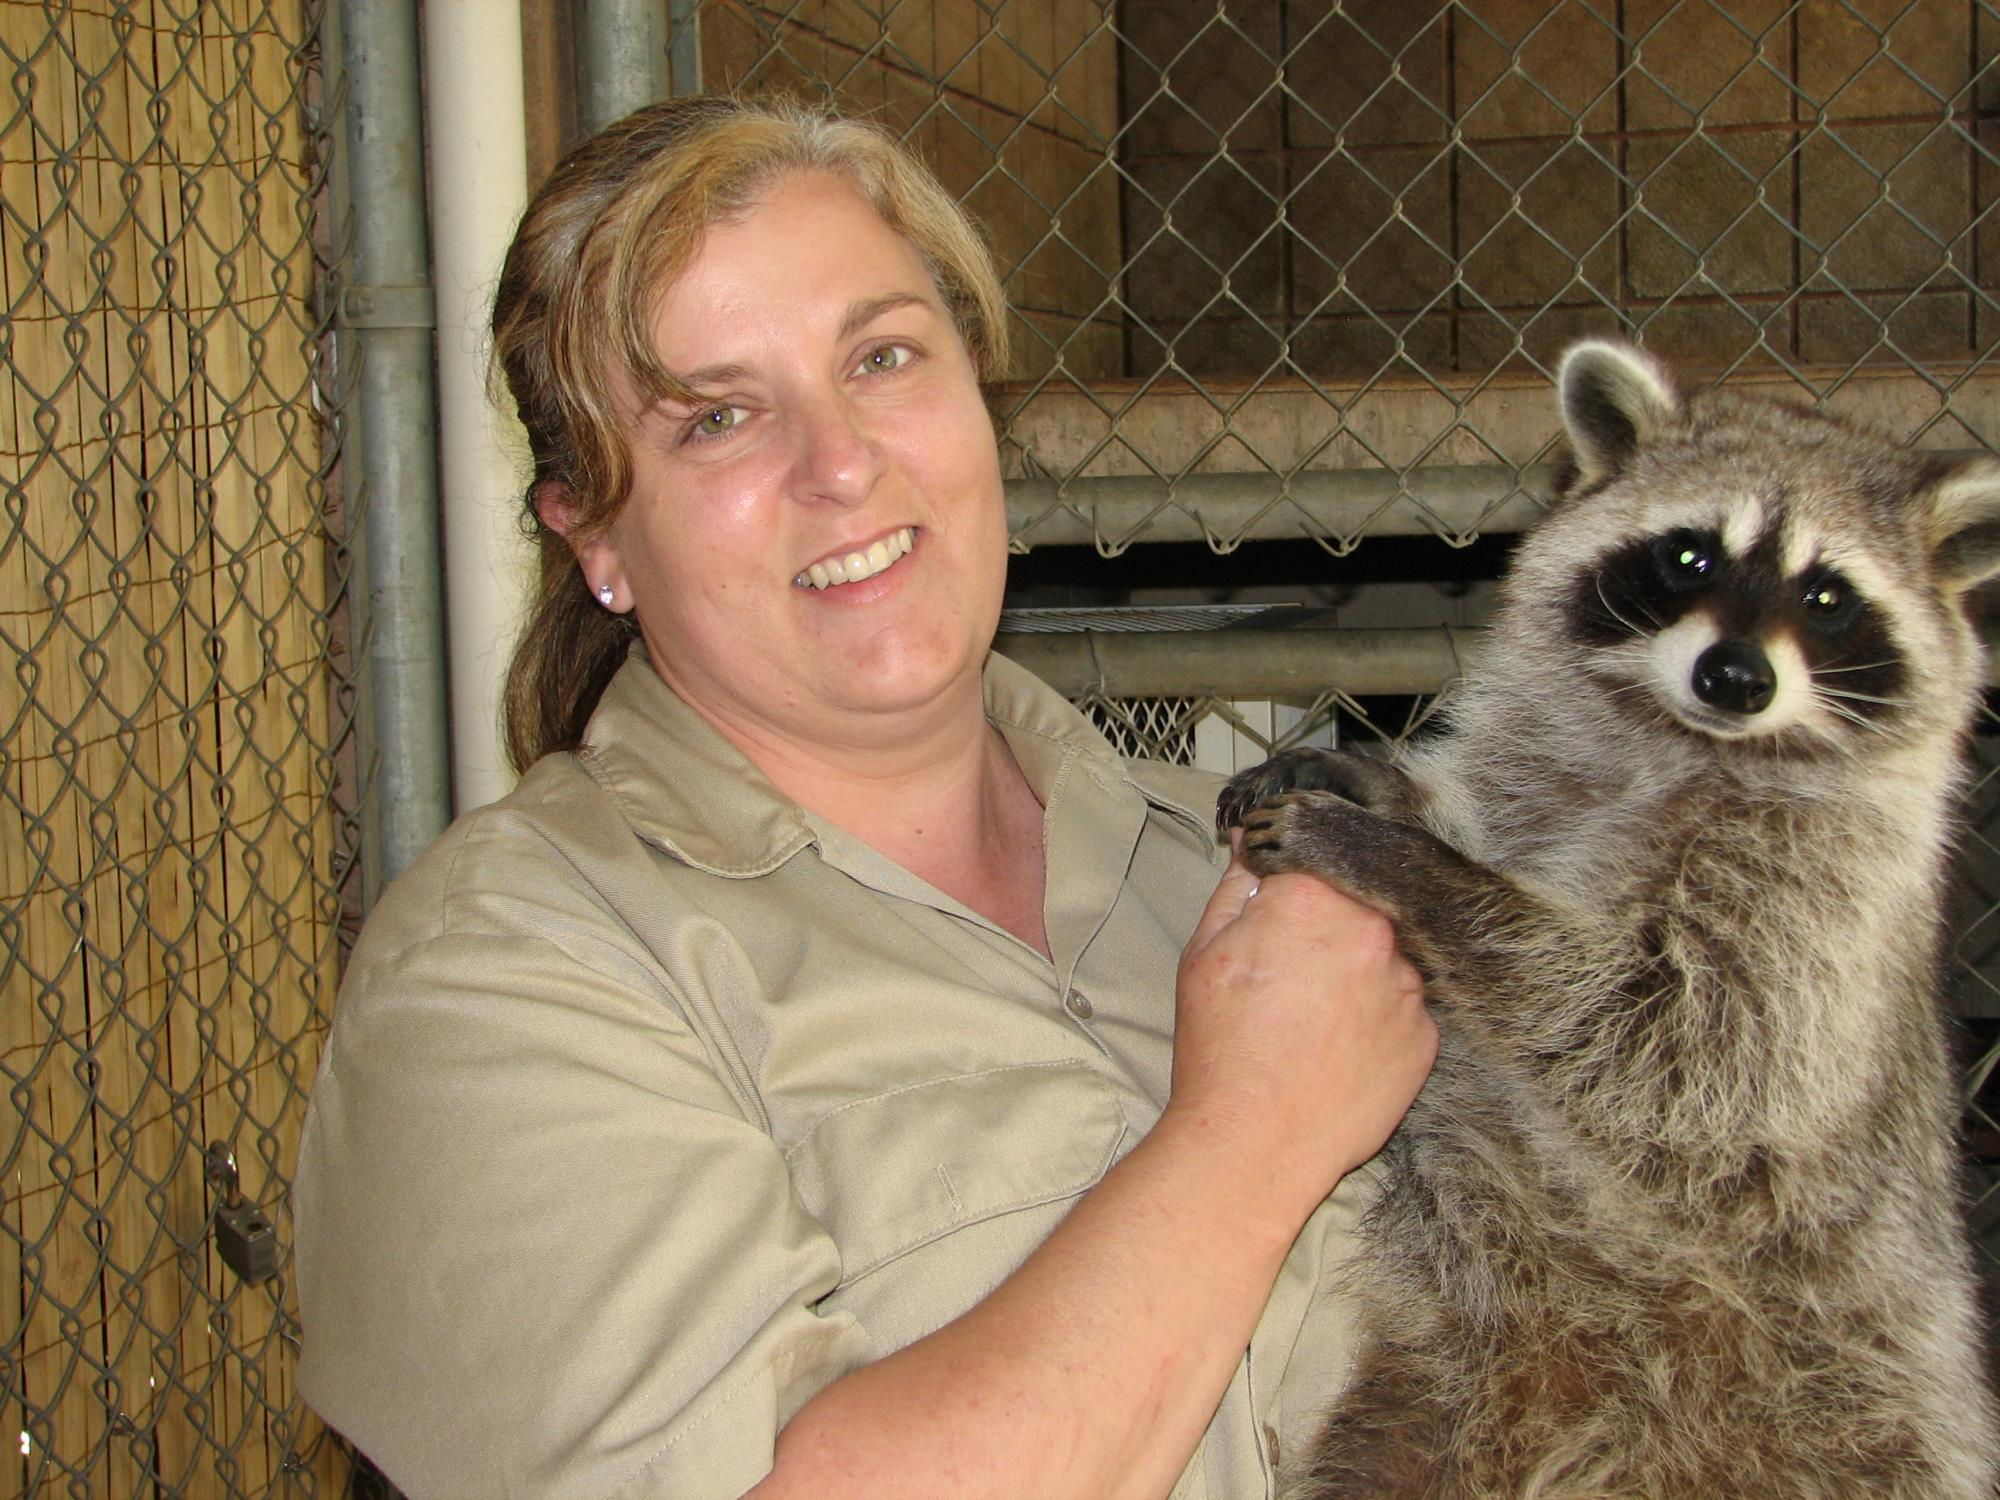 Zookeeper with Racoon